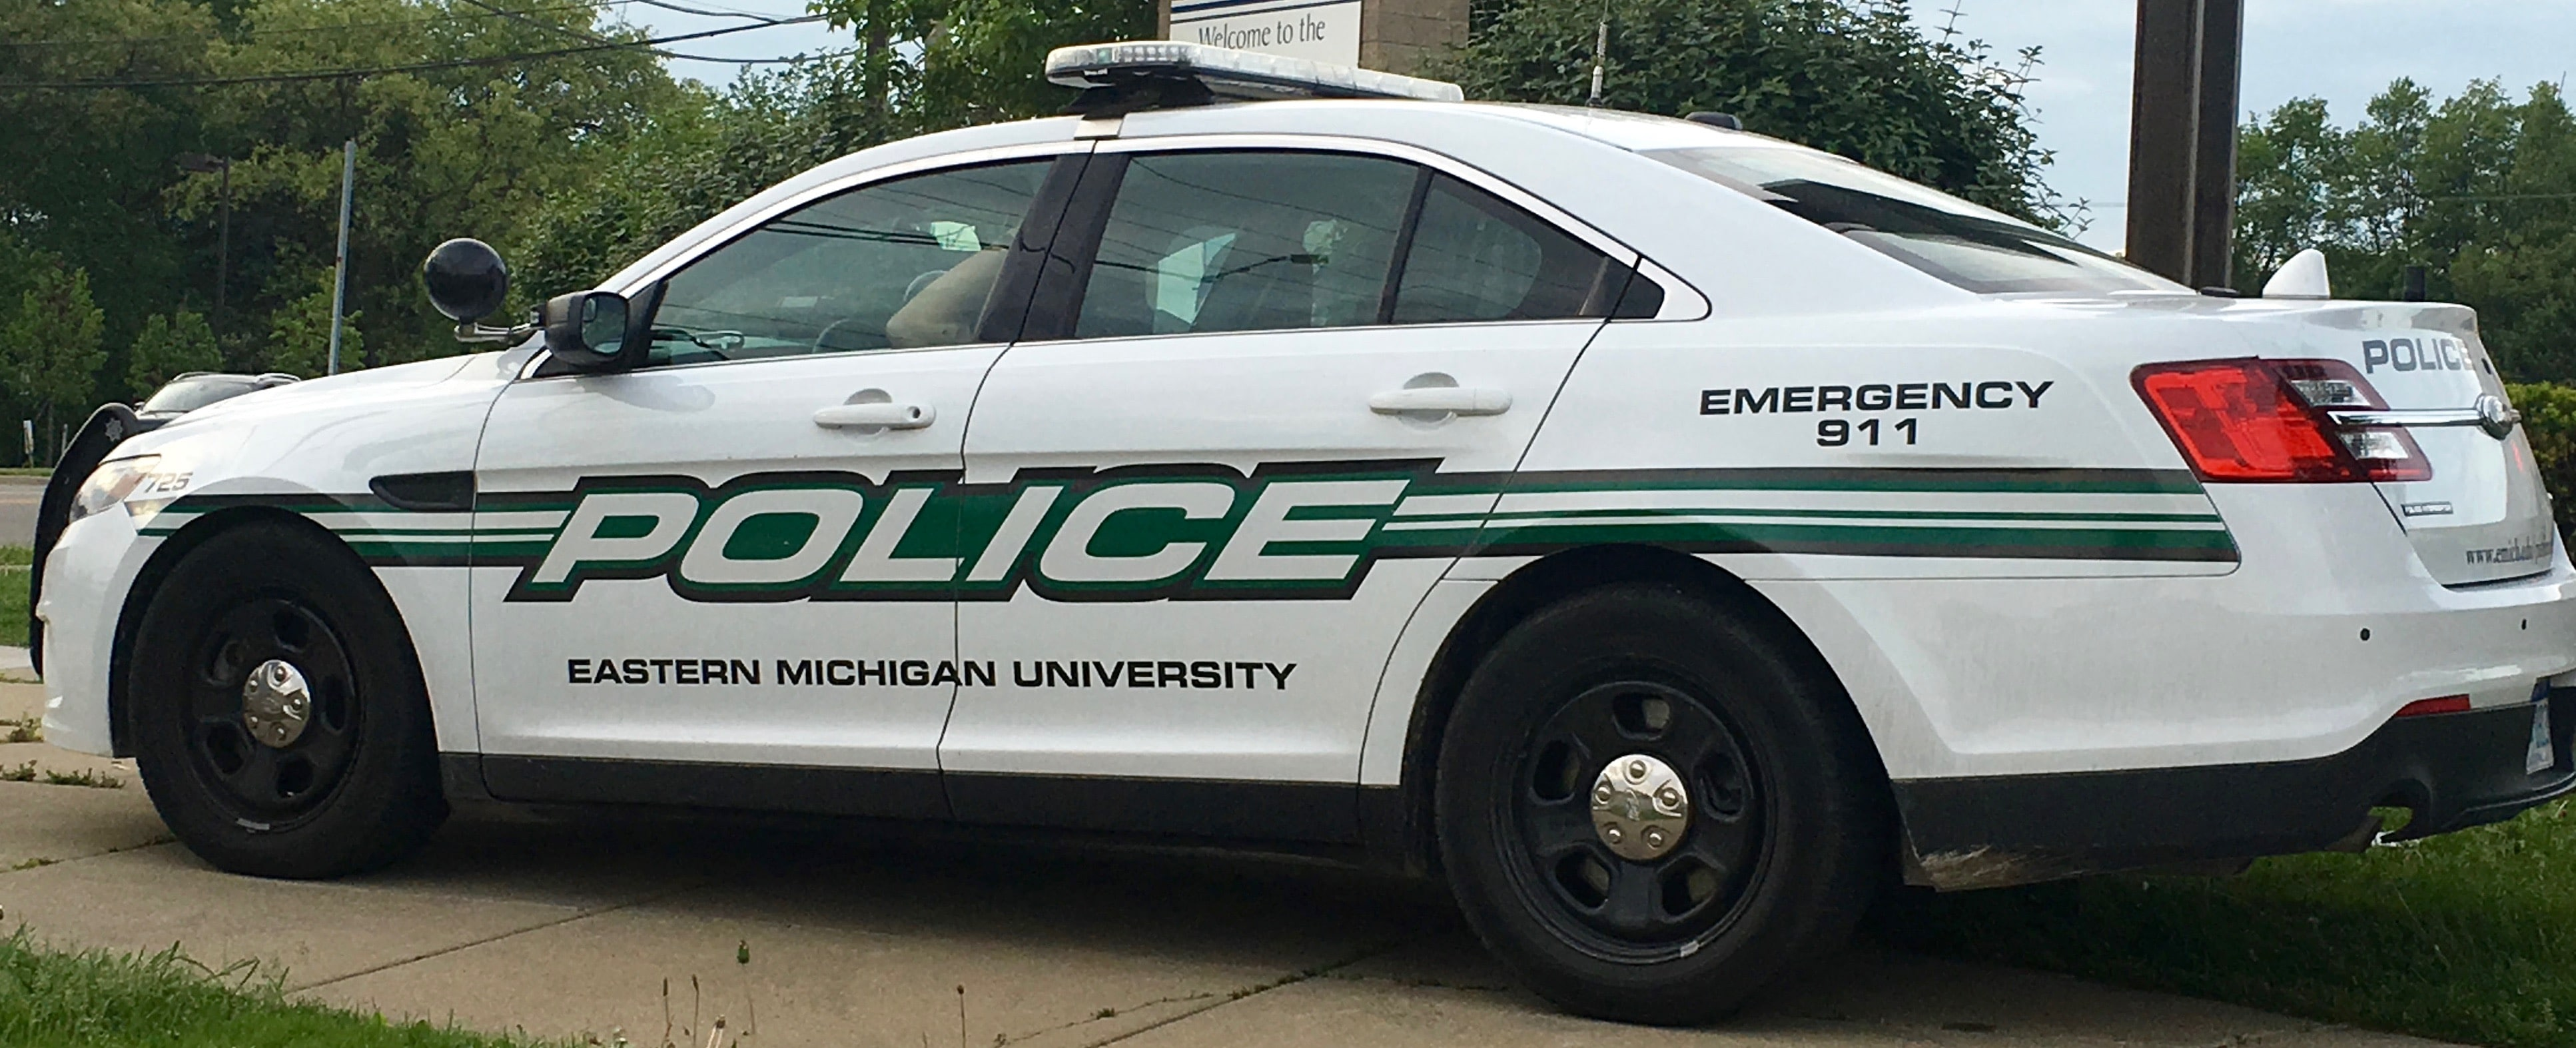 michigan police vehicle